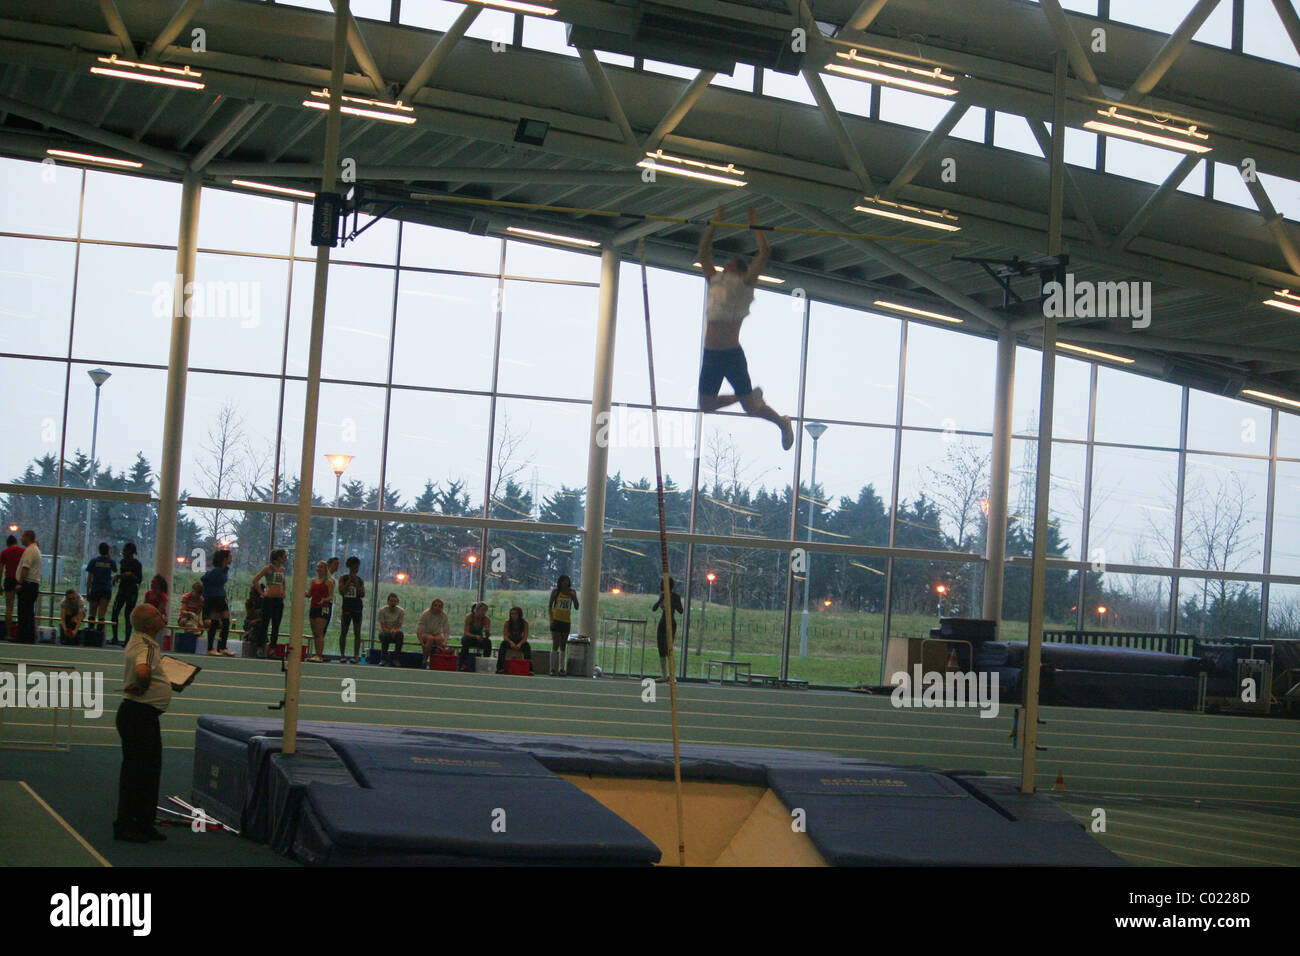 Athlete  doing the High Jump at Lee Valley  Athletics Track, in Enfield, London. - Stock Image